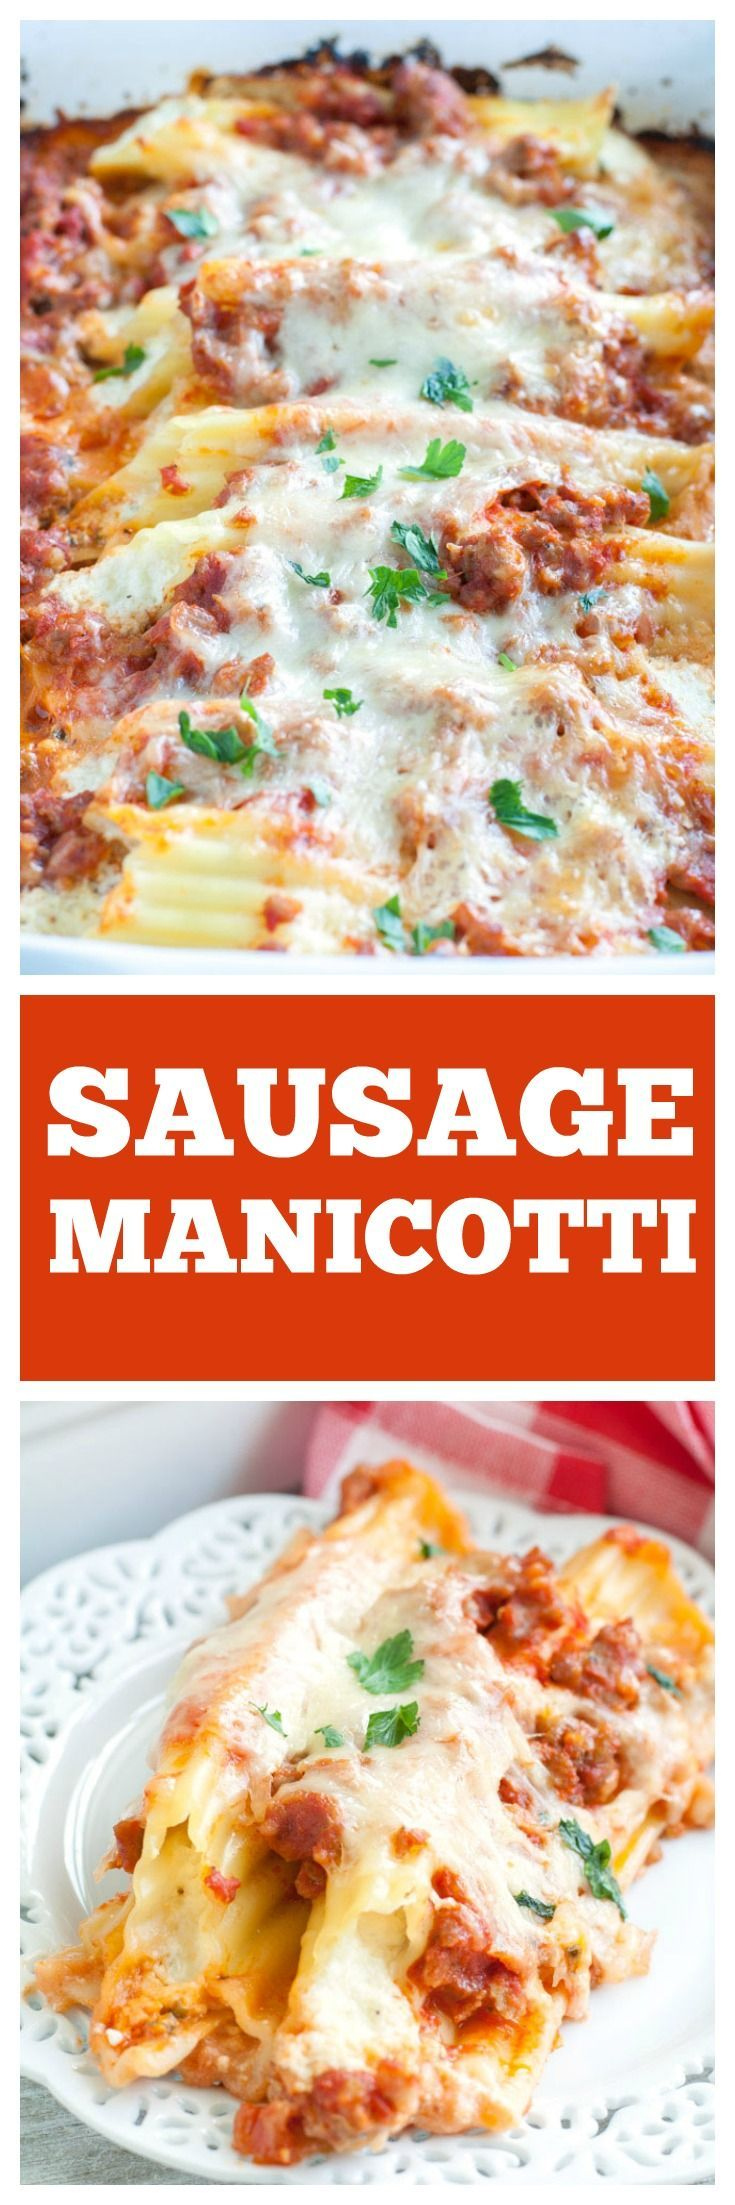 SAUSAGE MANICOTTI IS THE BEST MANICOTTI RECIPE AROUND! PASTA FILLED WITH 3 CHEESES AND TOPPED WITH AN EASY ITALIAN SAUSAGE SAUCE.